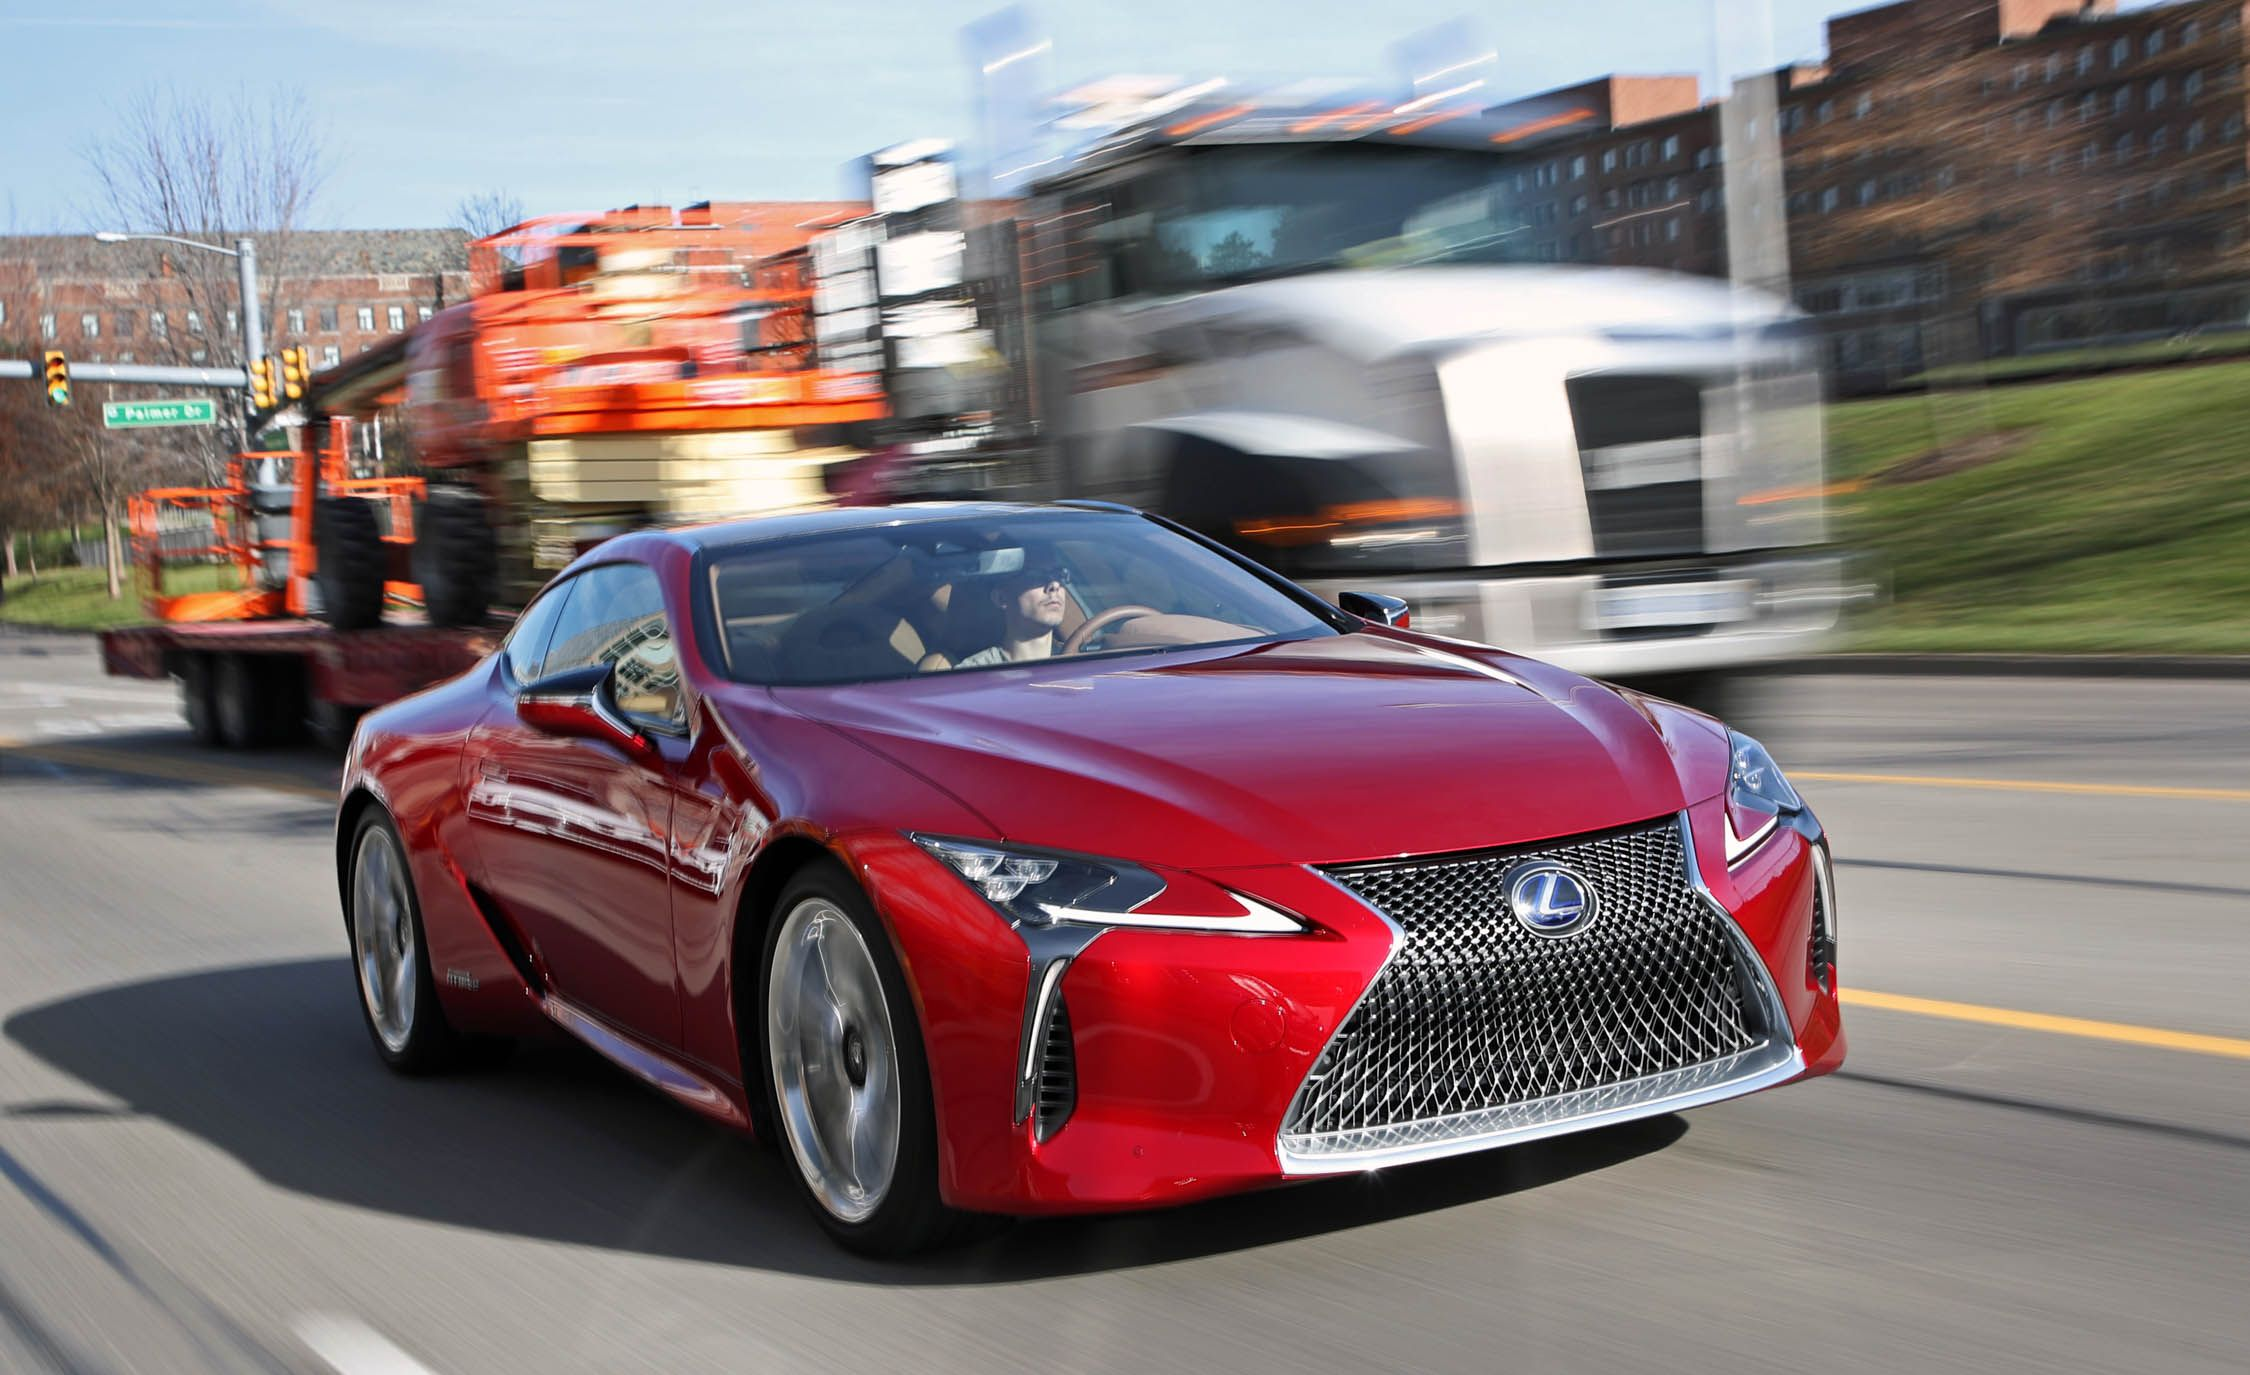 2018 Lexus LC500 LC500h First Drive Review